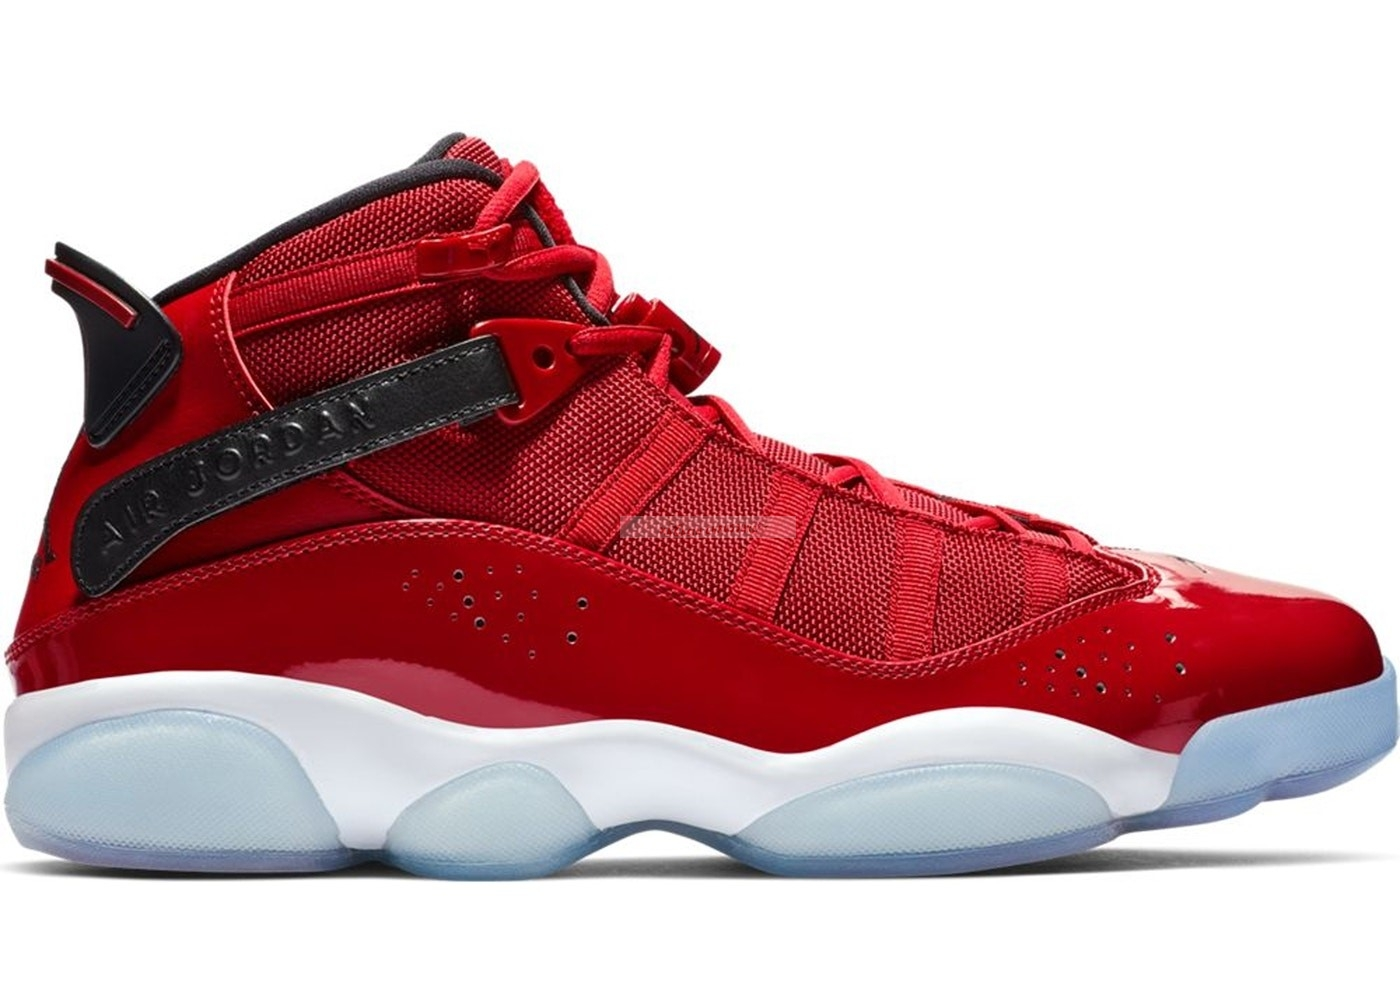 Air Jordan 6 Rings Rouge (322992-601) Chaussure de Basket